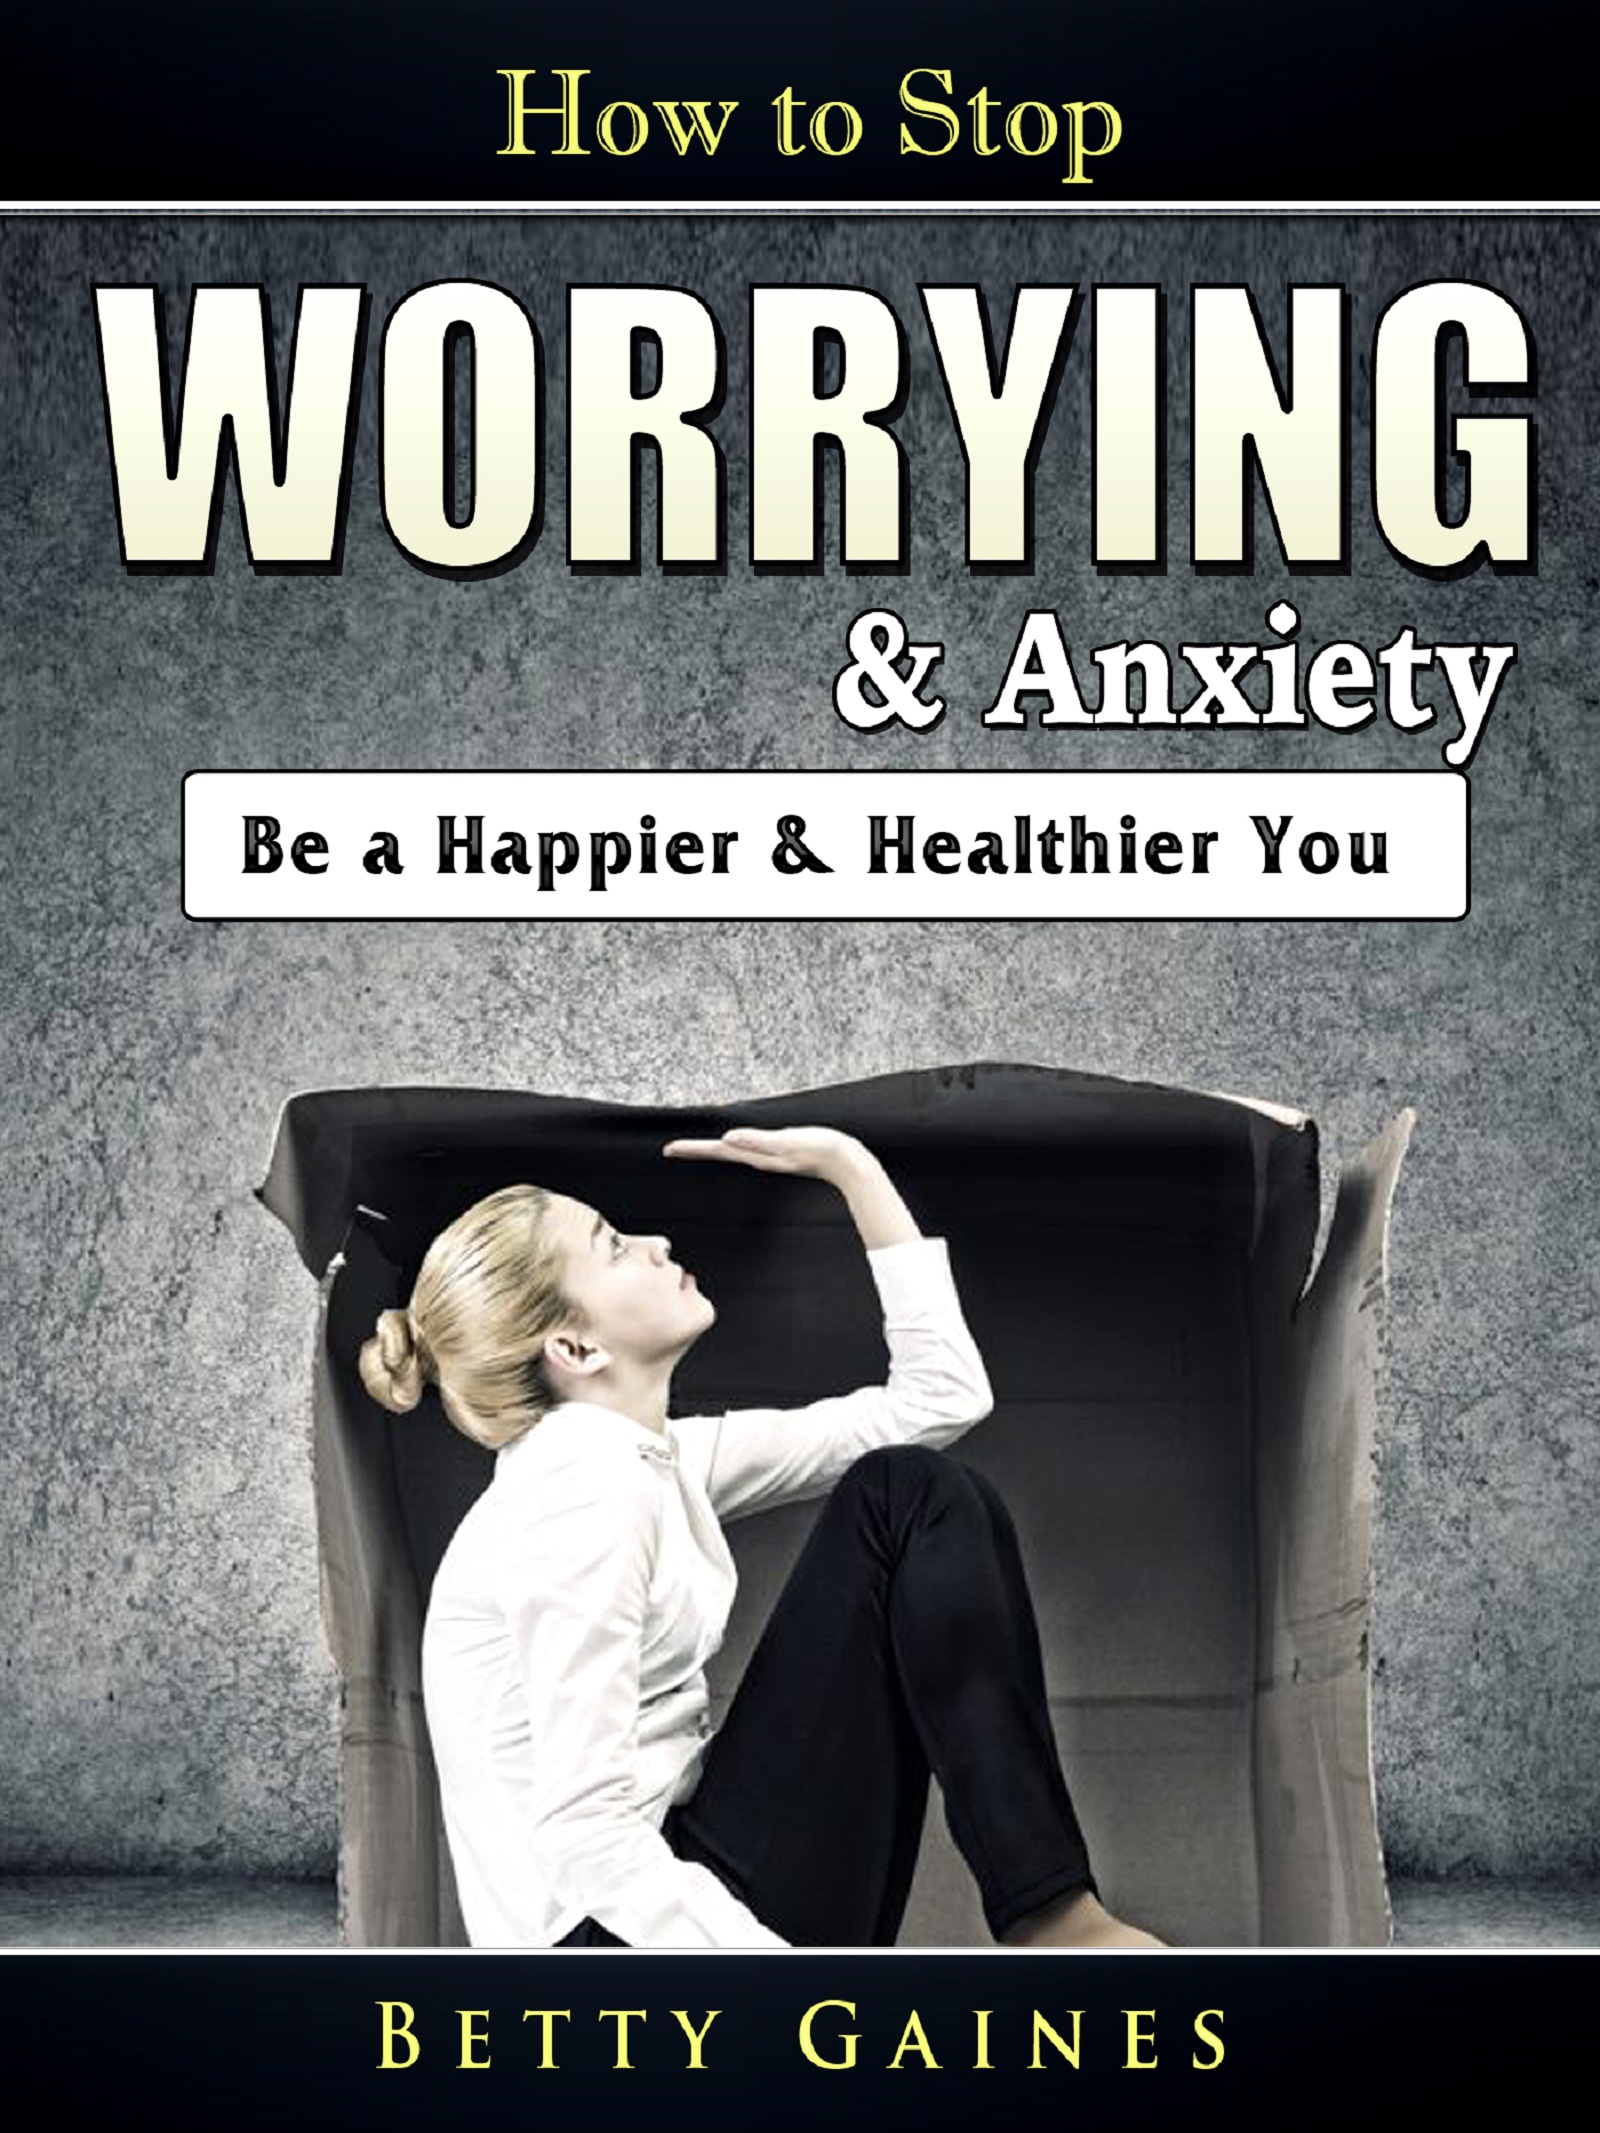 How to stop worrying & anxiety